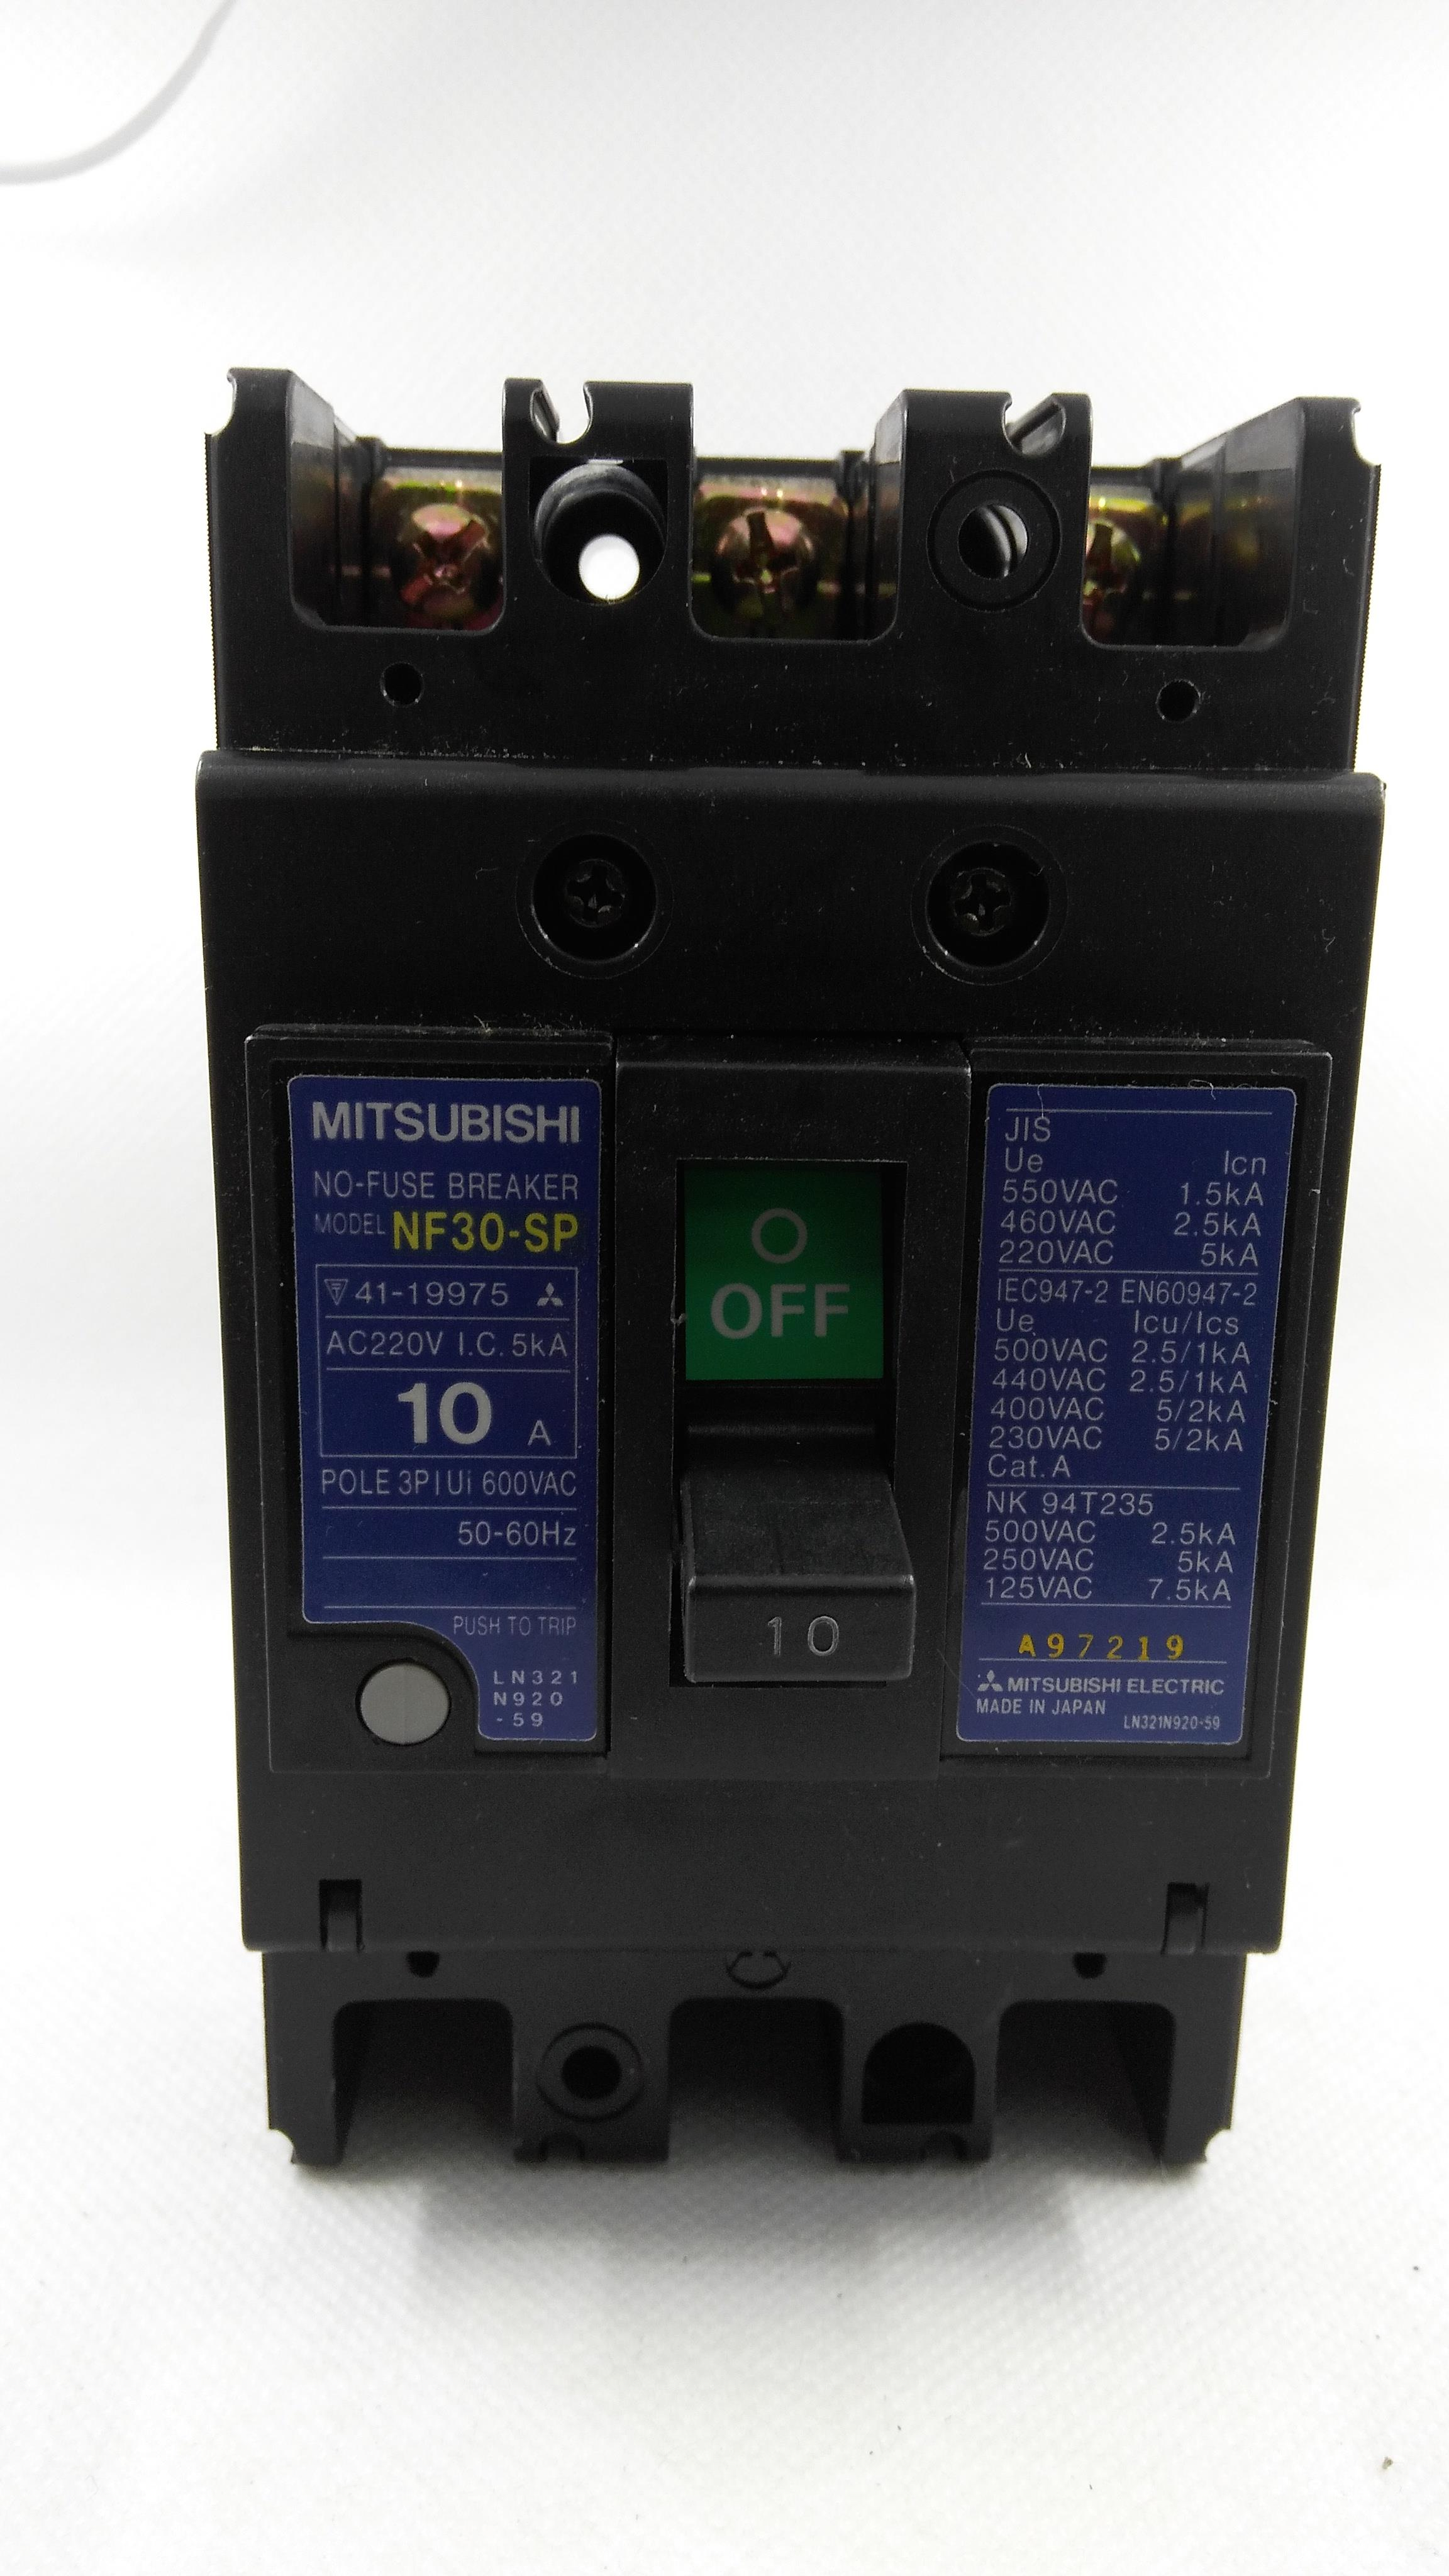 Sell Nfb Nf 30 Sp Mitsubishi From Indonesia By Hargo